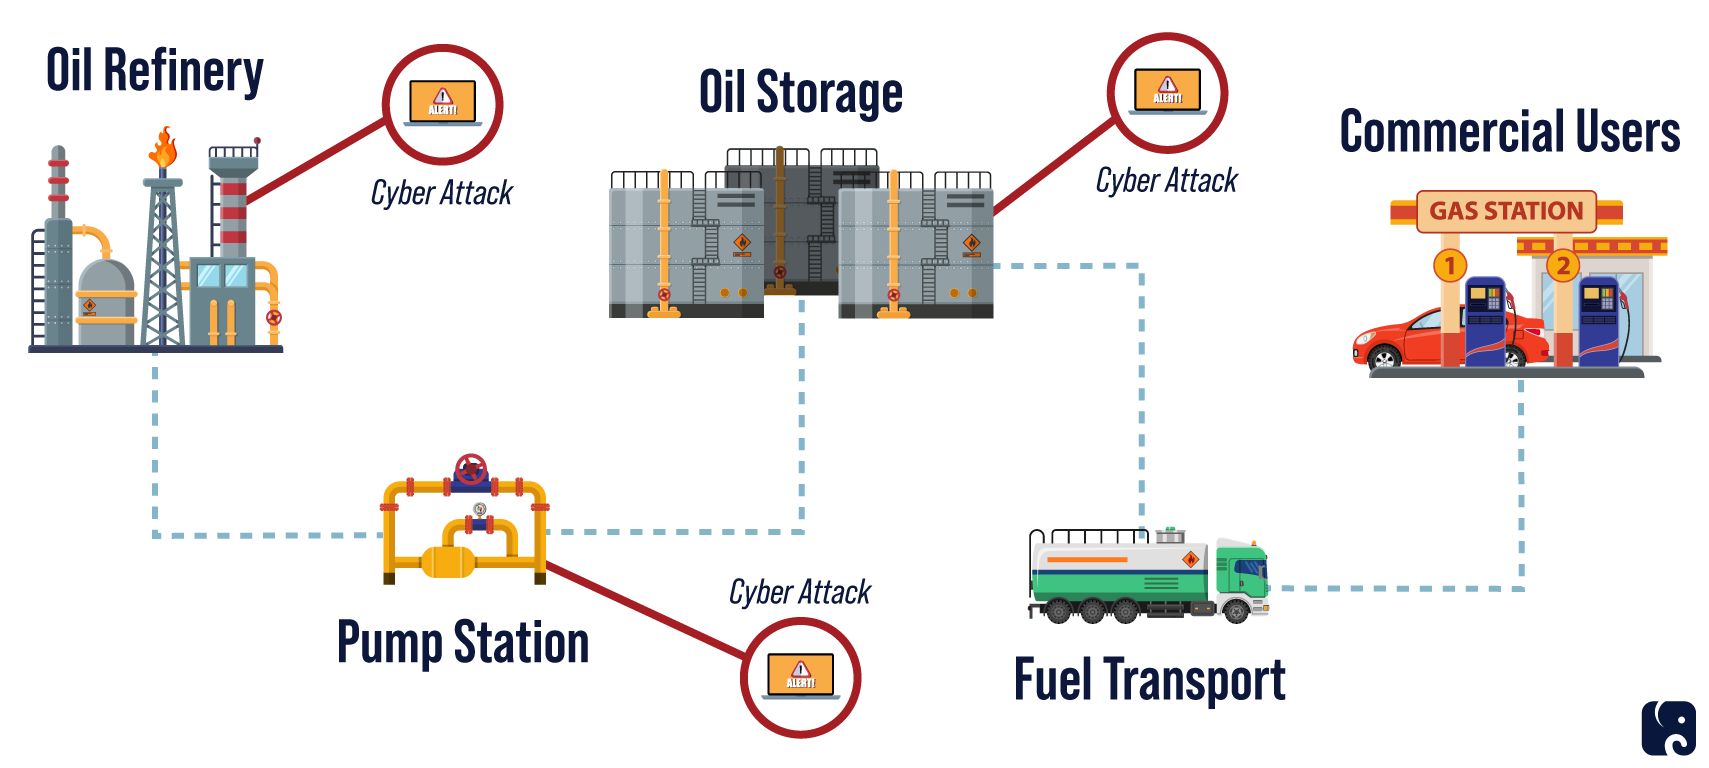 Multiple Vulnerable Points in the Oil Processing Network